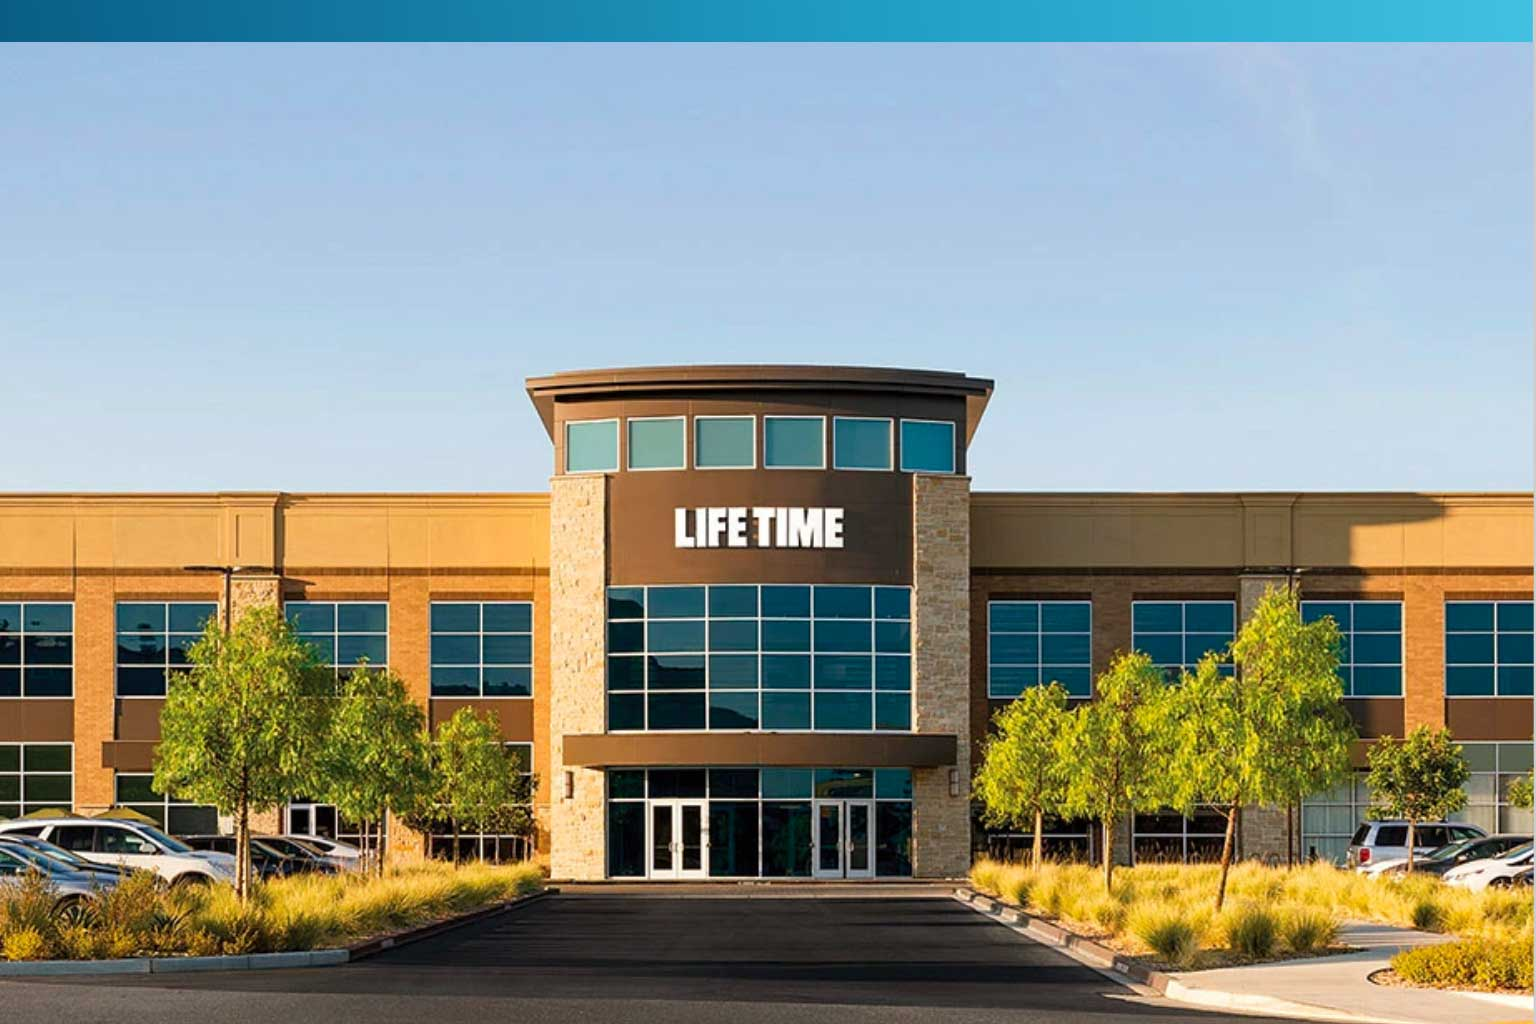 Exterior of a Life Time club